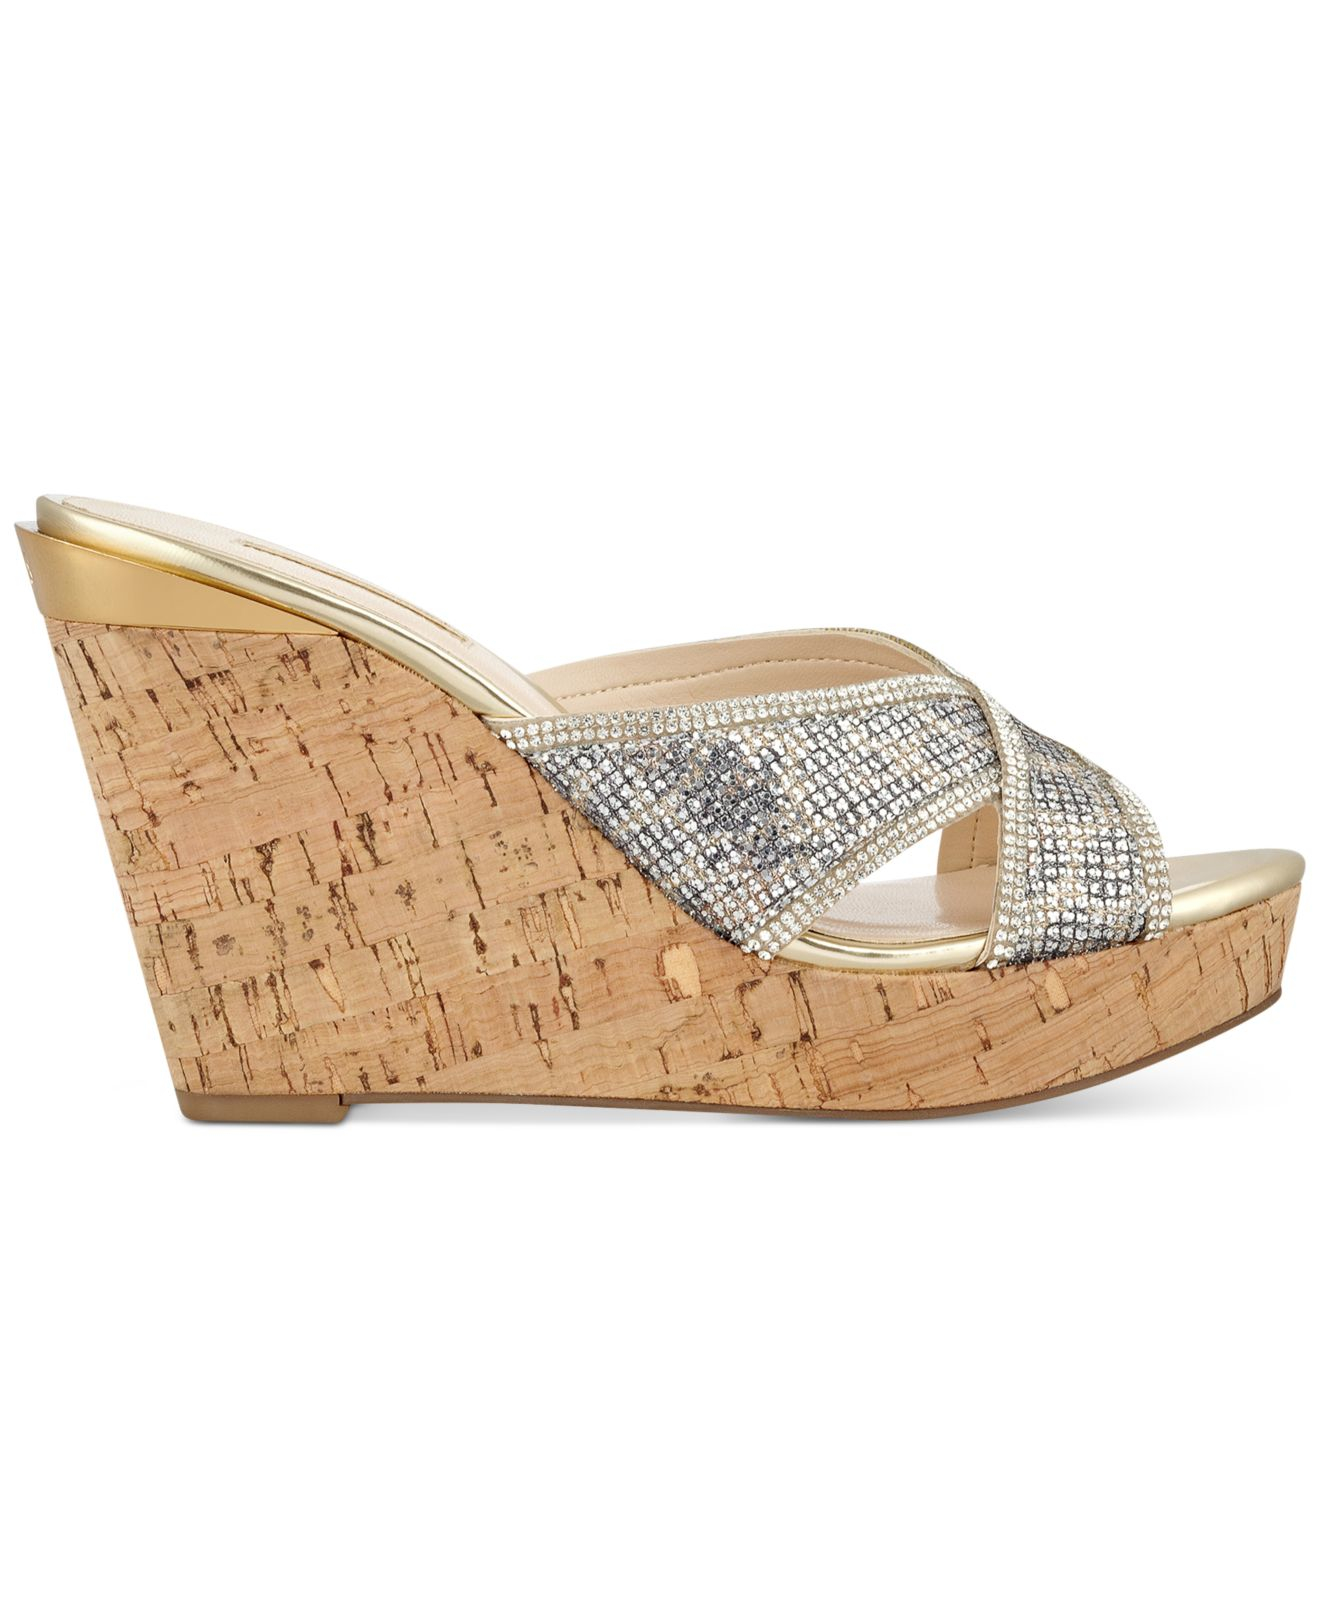 98b5c14bf37 Lyst - Guess Women s Eleonora X Wedge Sandals in Metallic